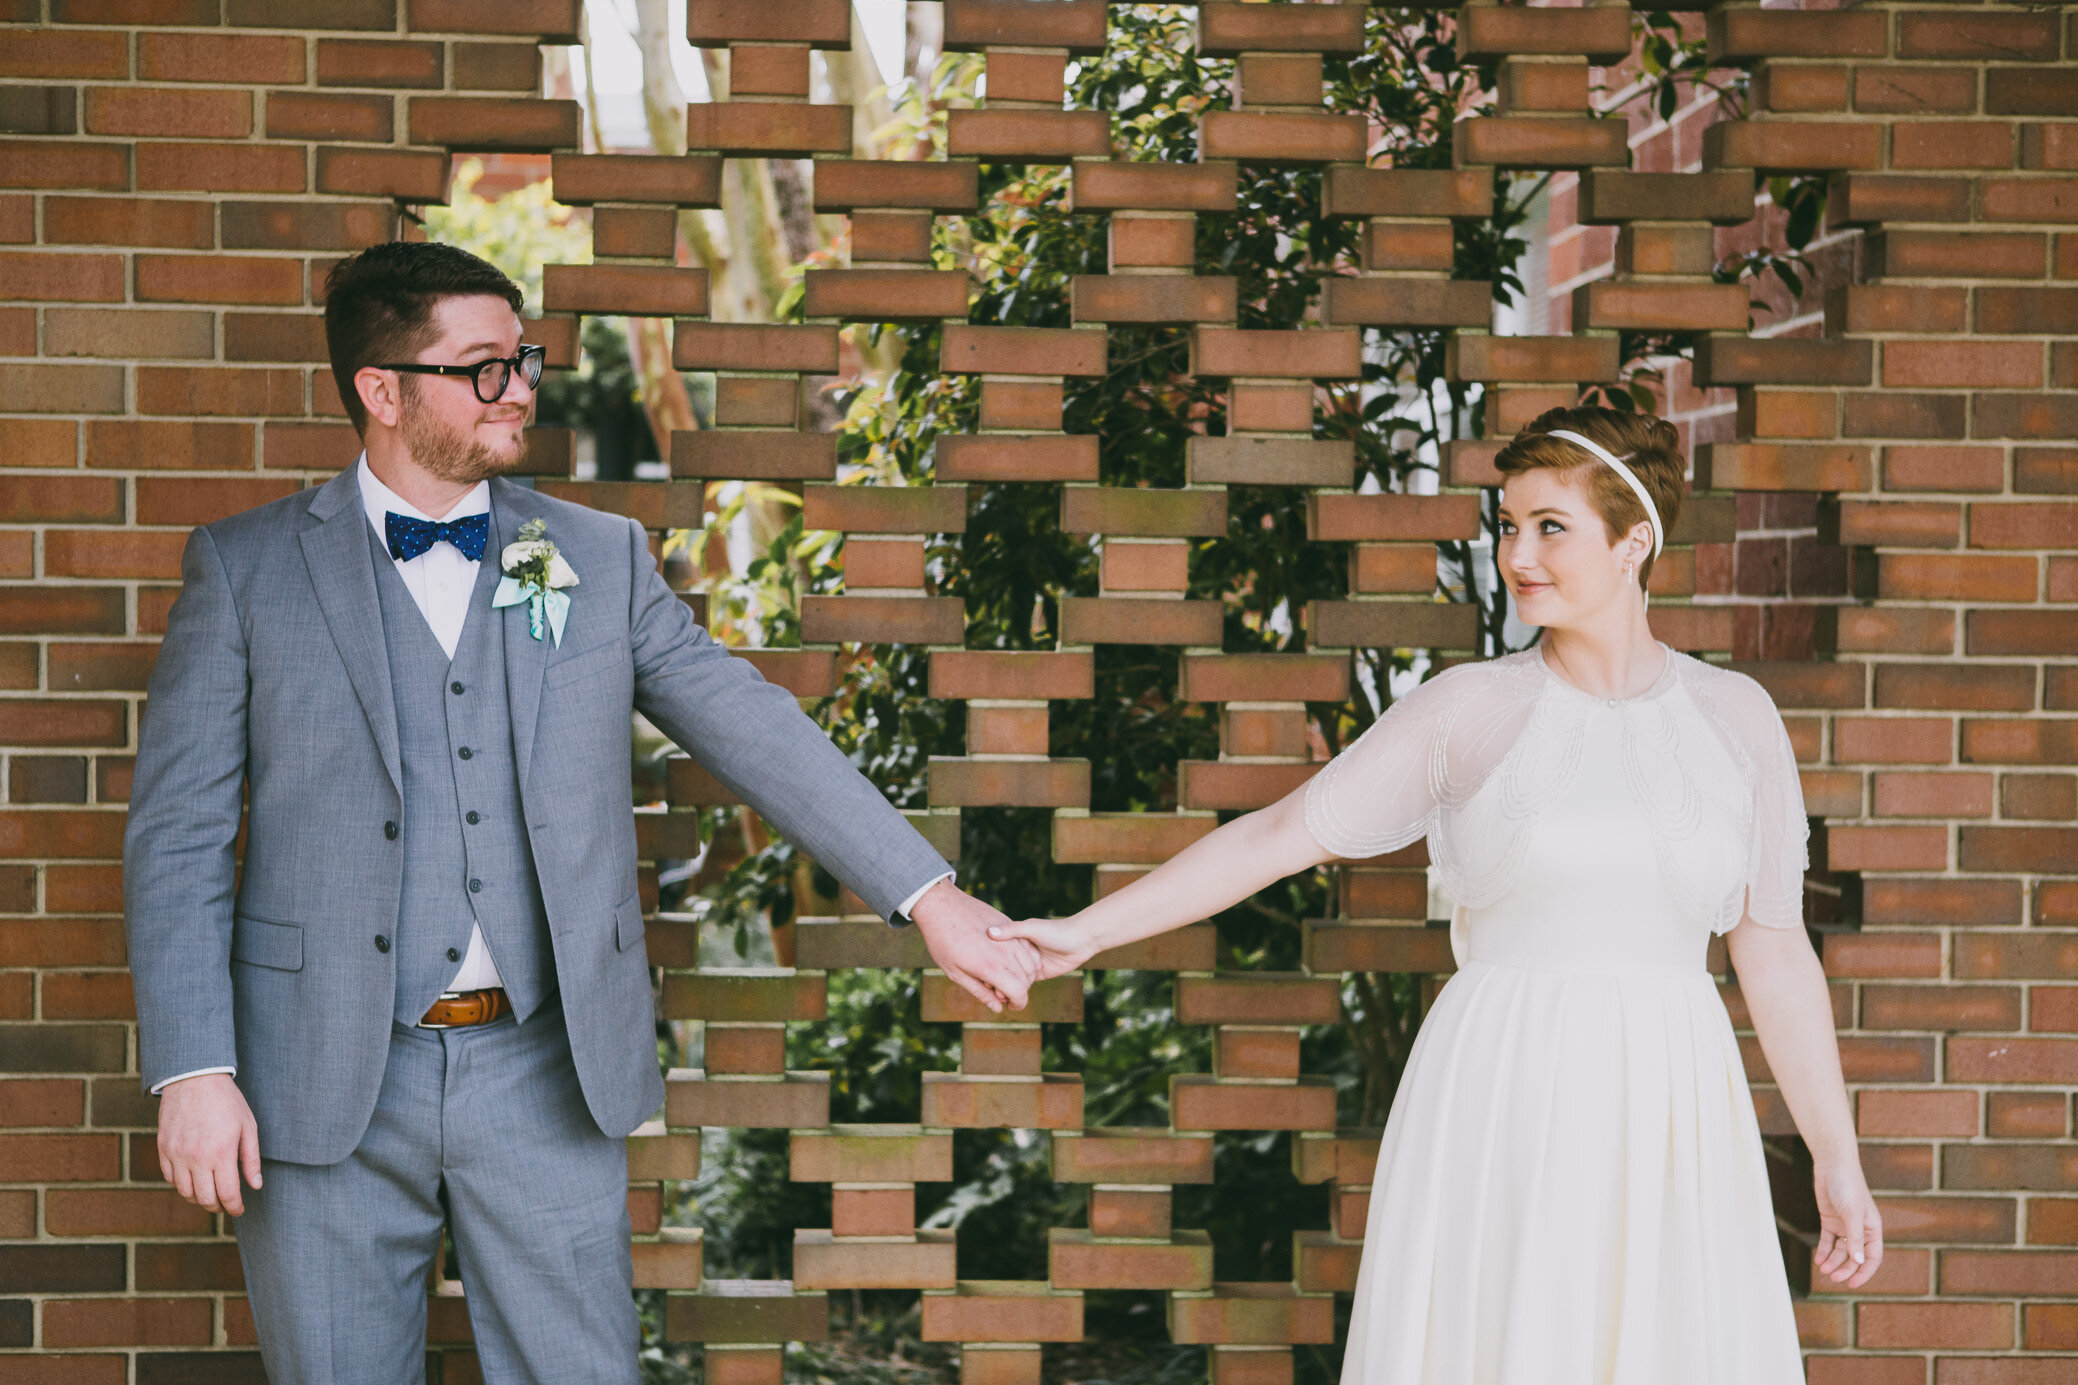 Montana wedding photography and elopement photography pricing information and details. Rates start at just $1,800 and include Helena, Butte, Billings, Bozeman, and many more locations.